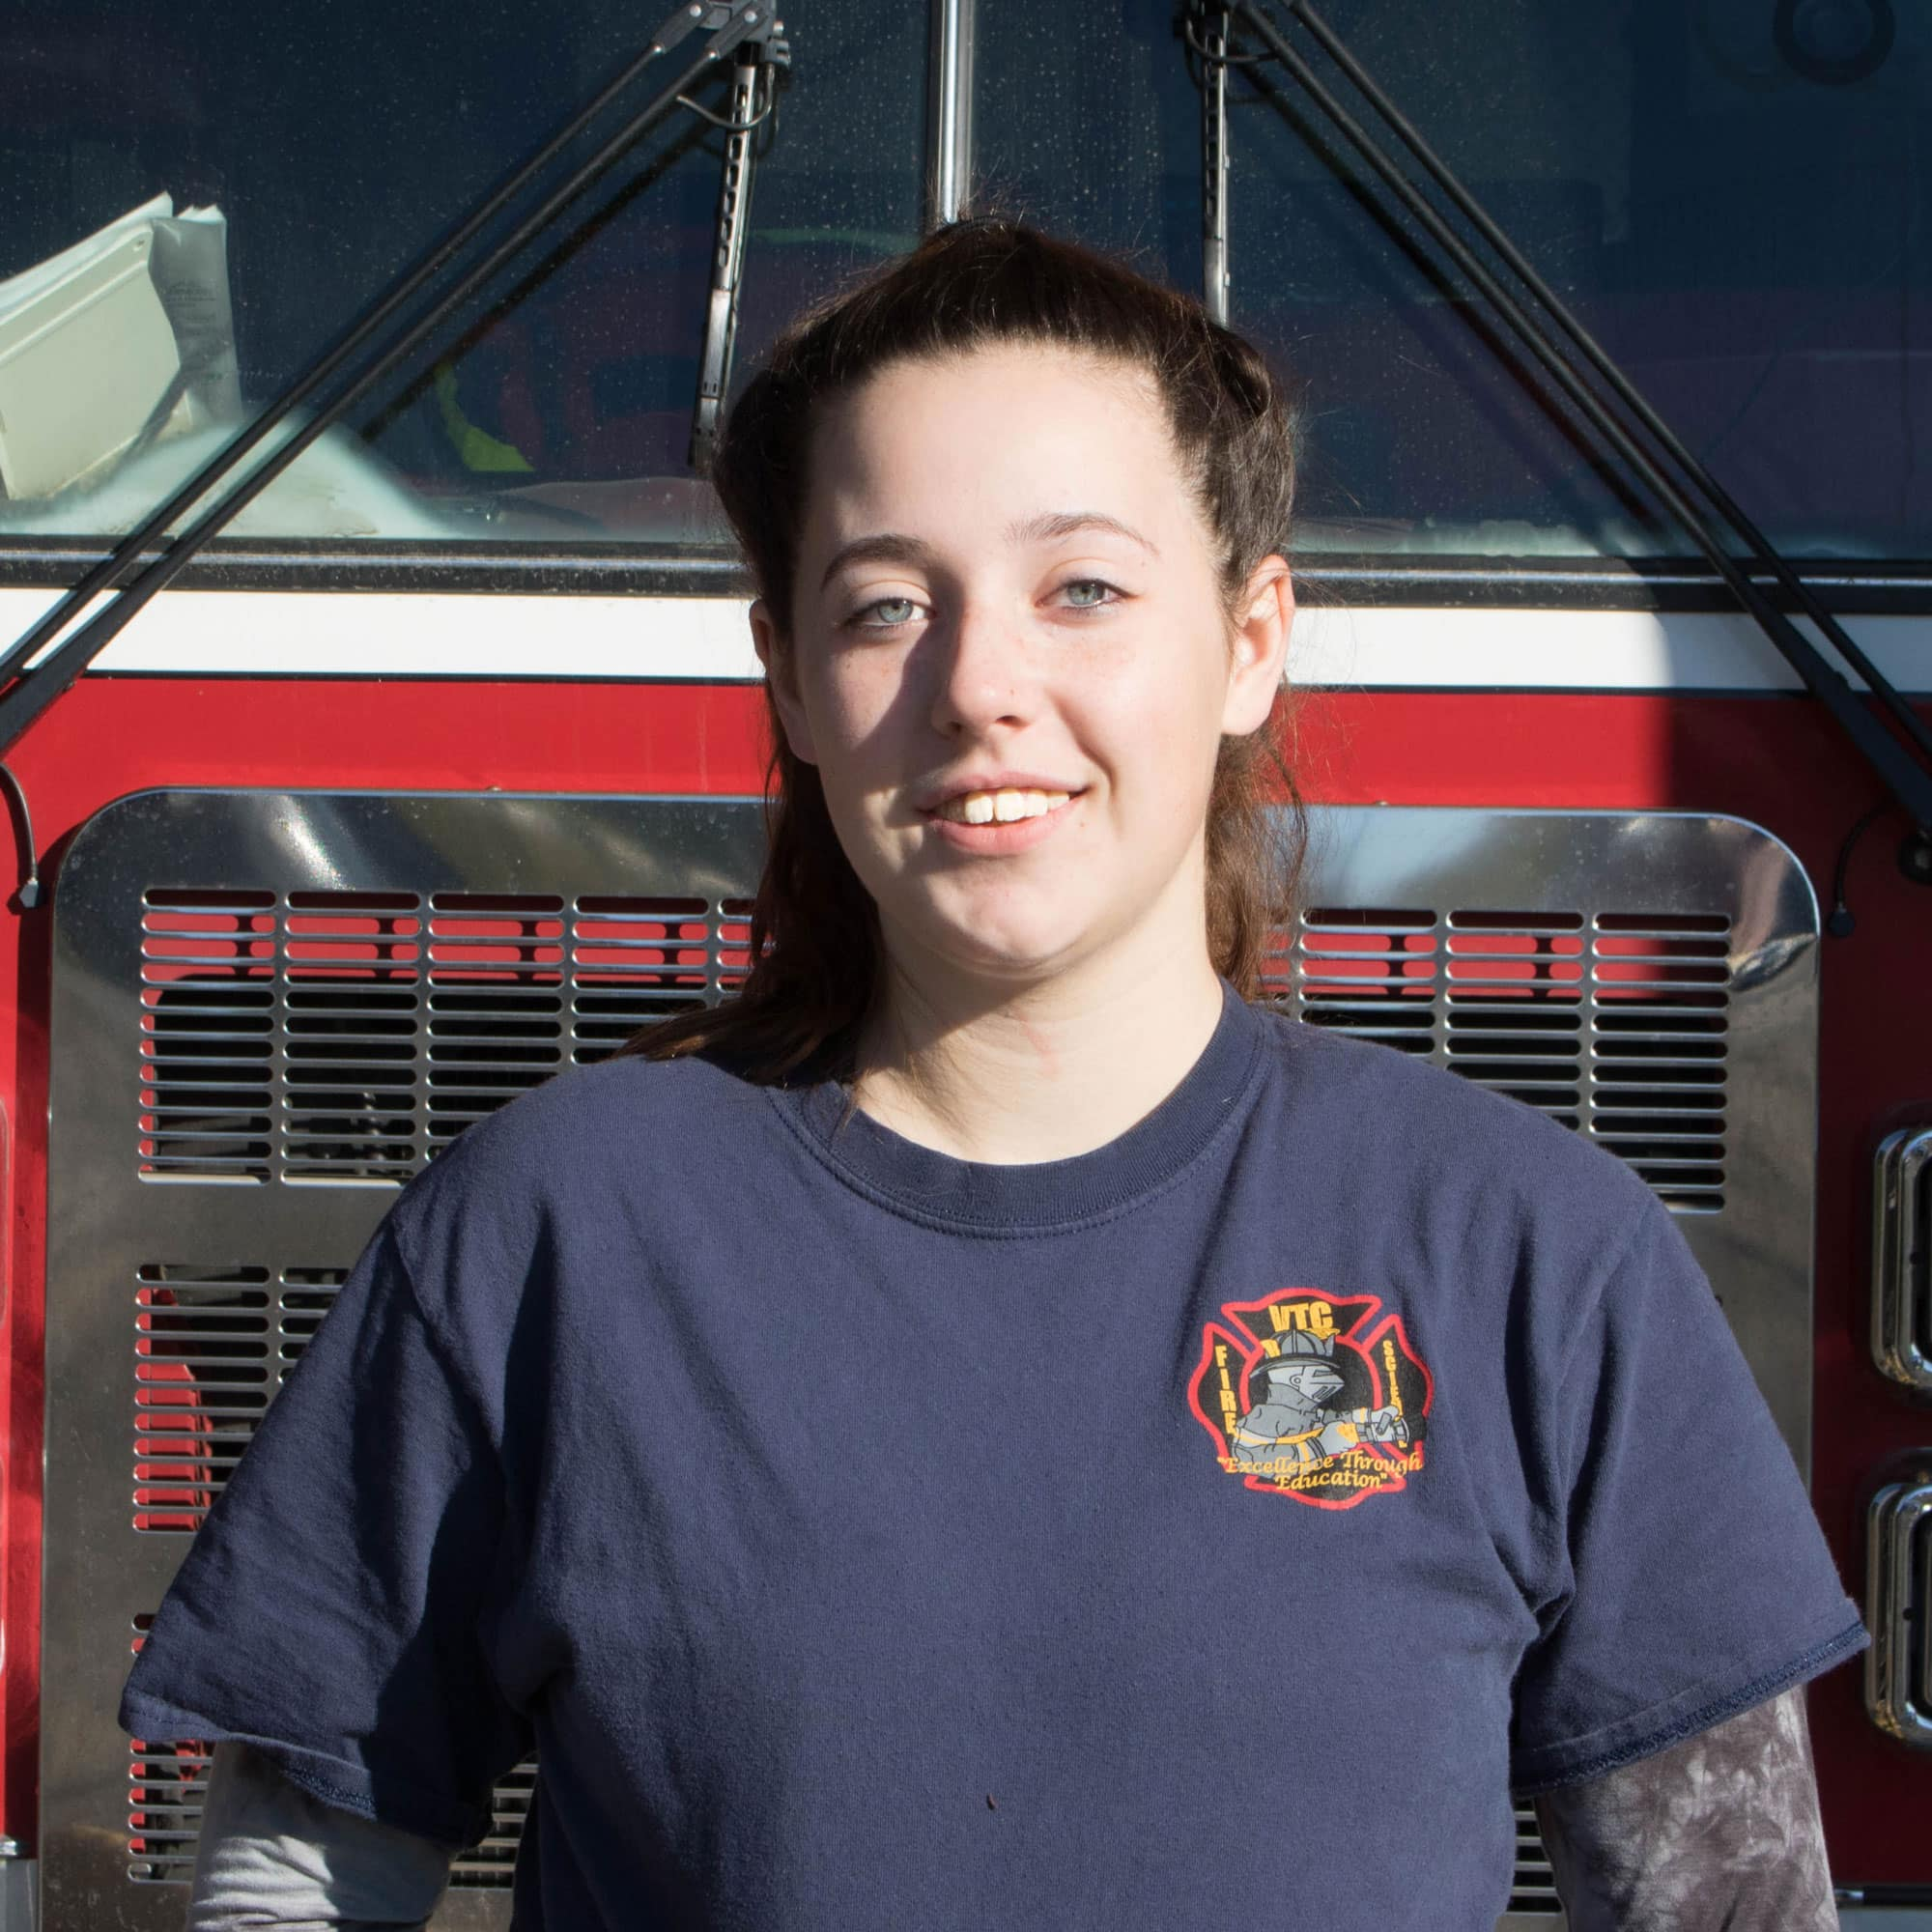 Courtney Clark smiles for camera in front of the fire truck